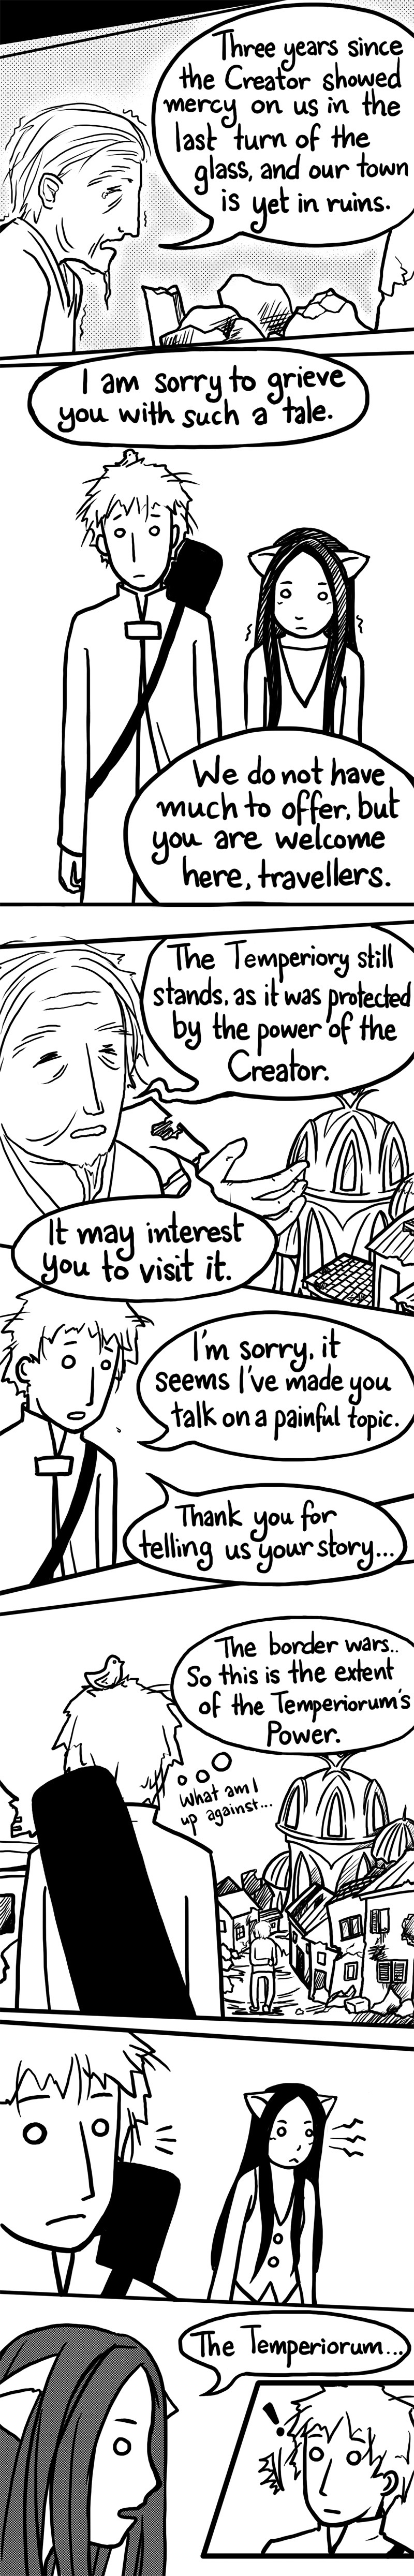 comic-2012-01-19-The-Tale.jpg